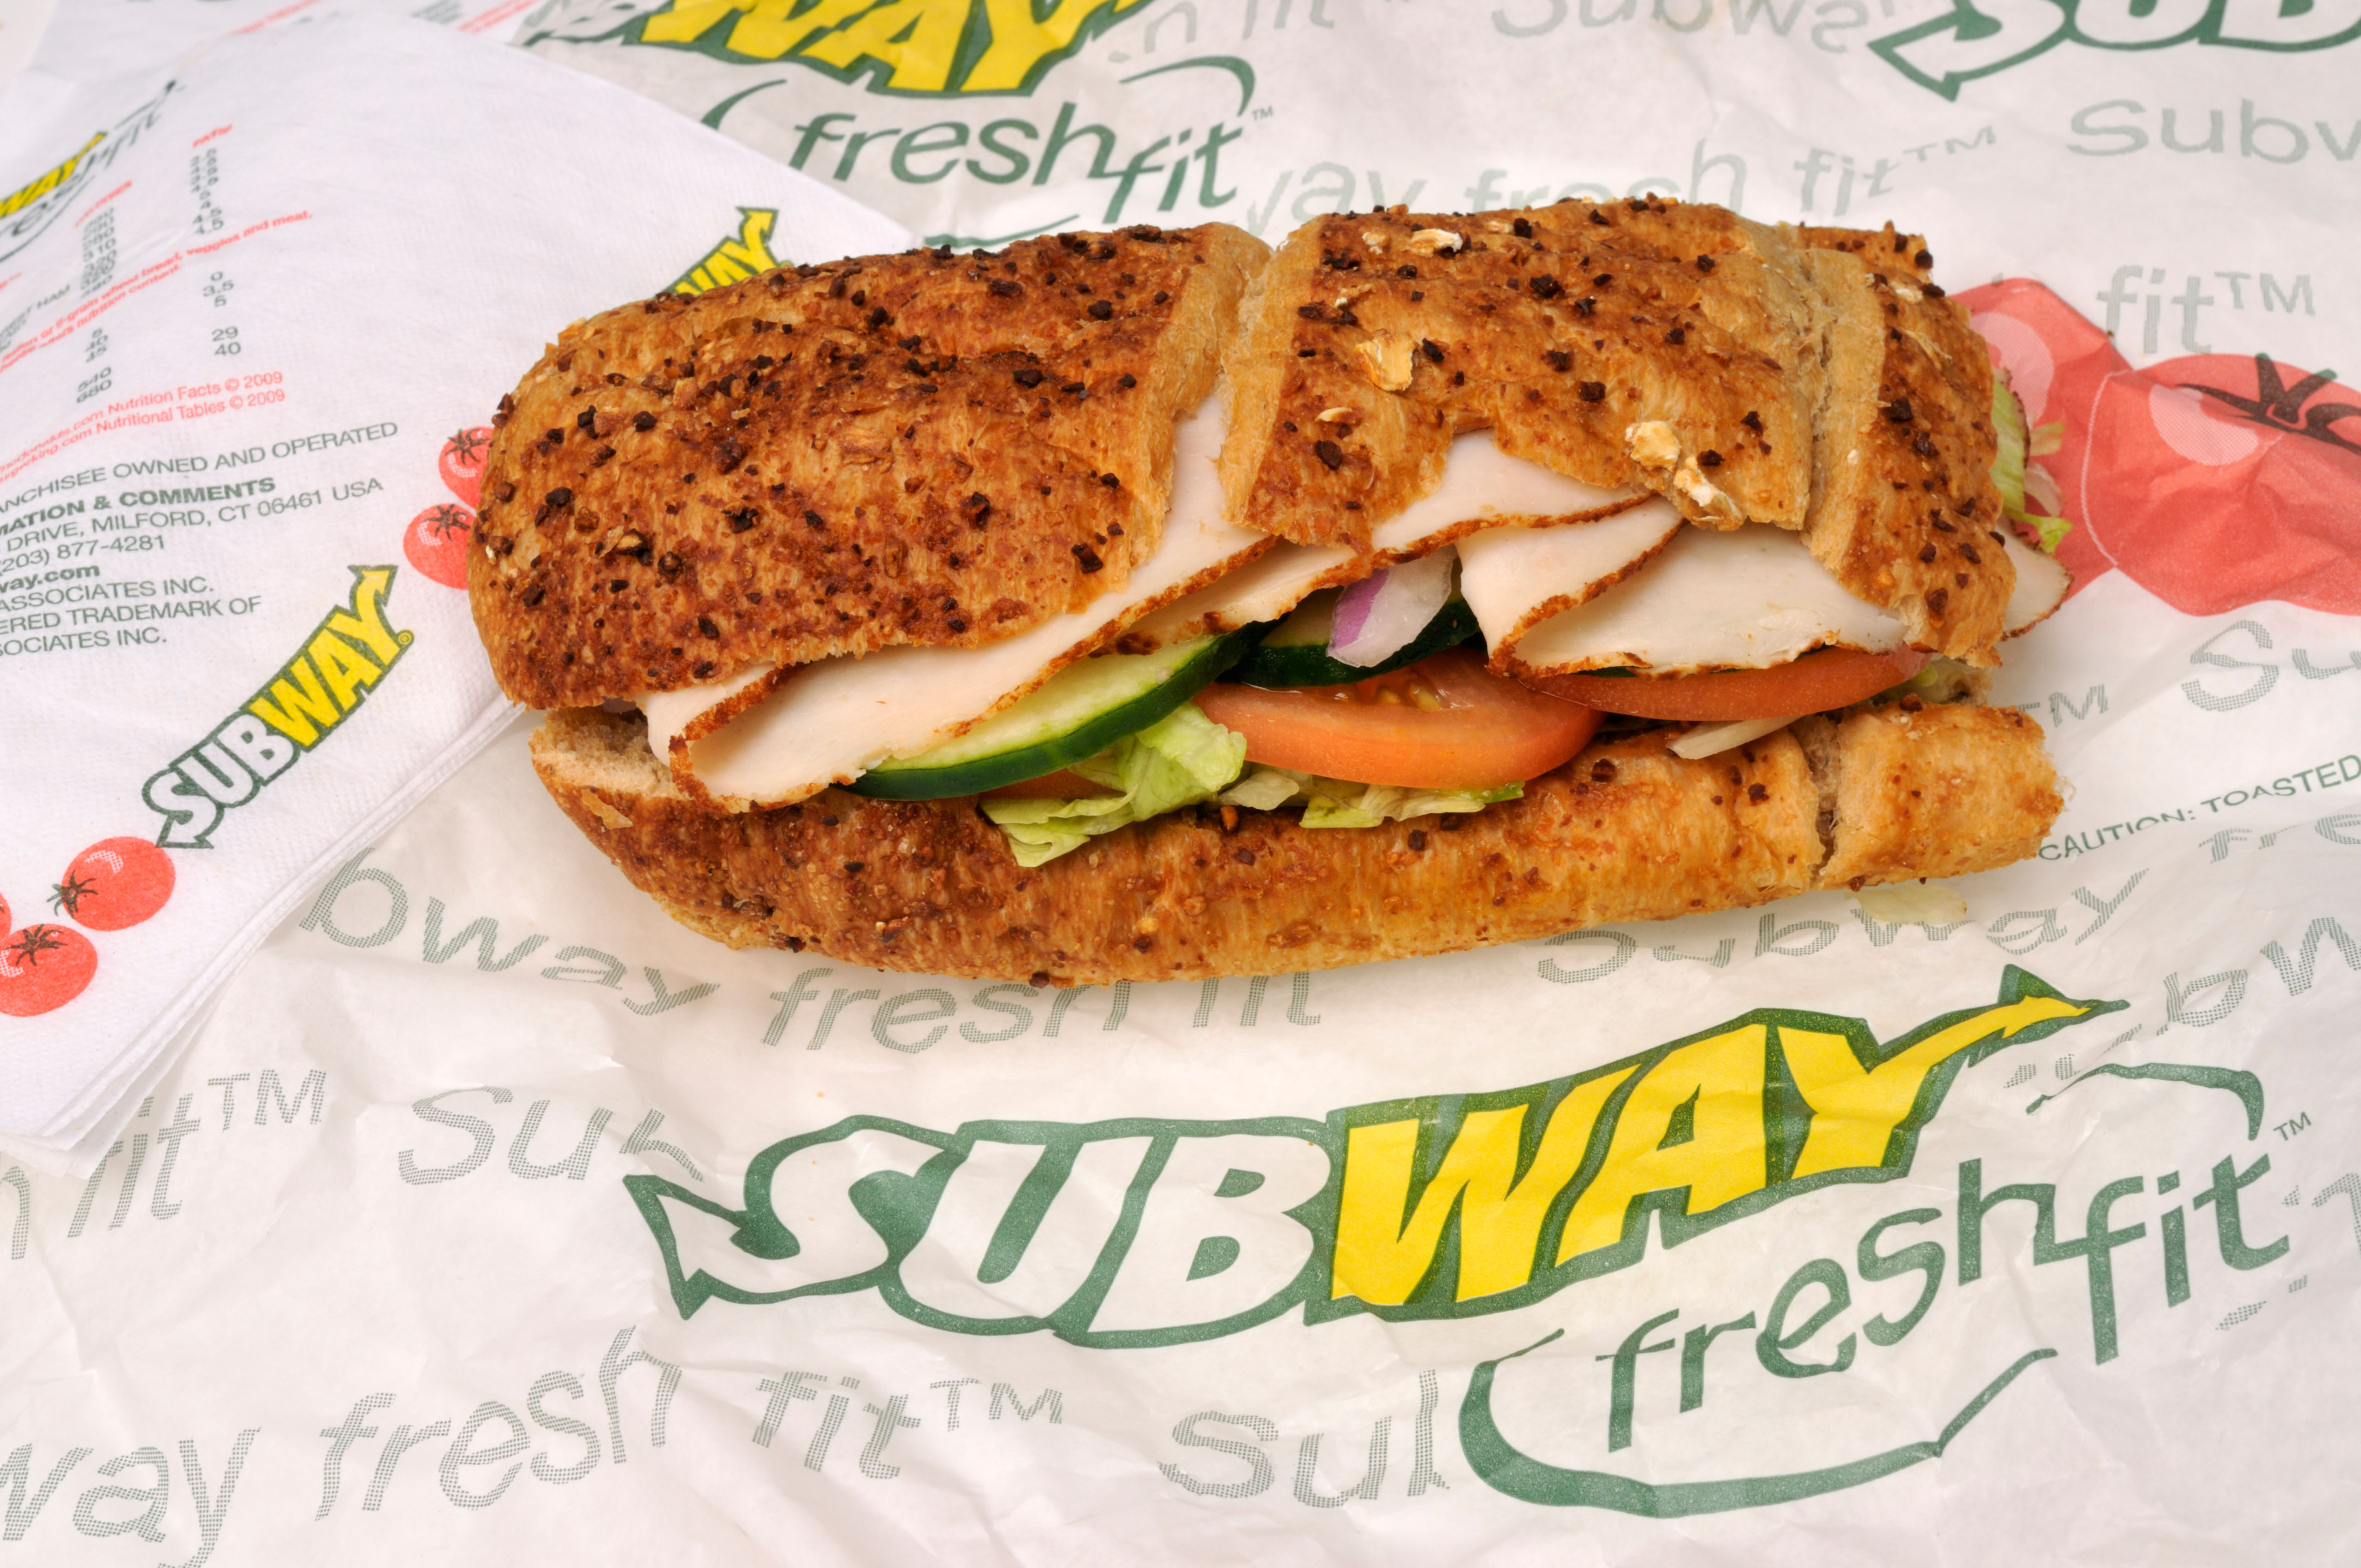 How to get a free Subway worth up to £4.50